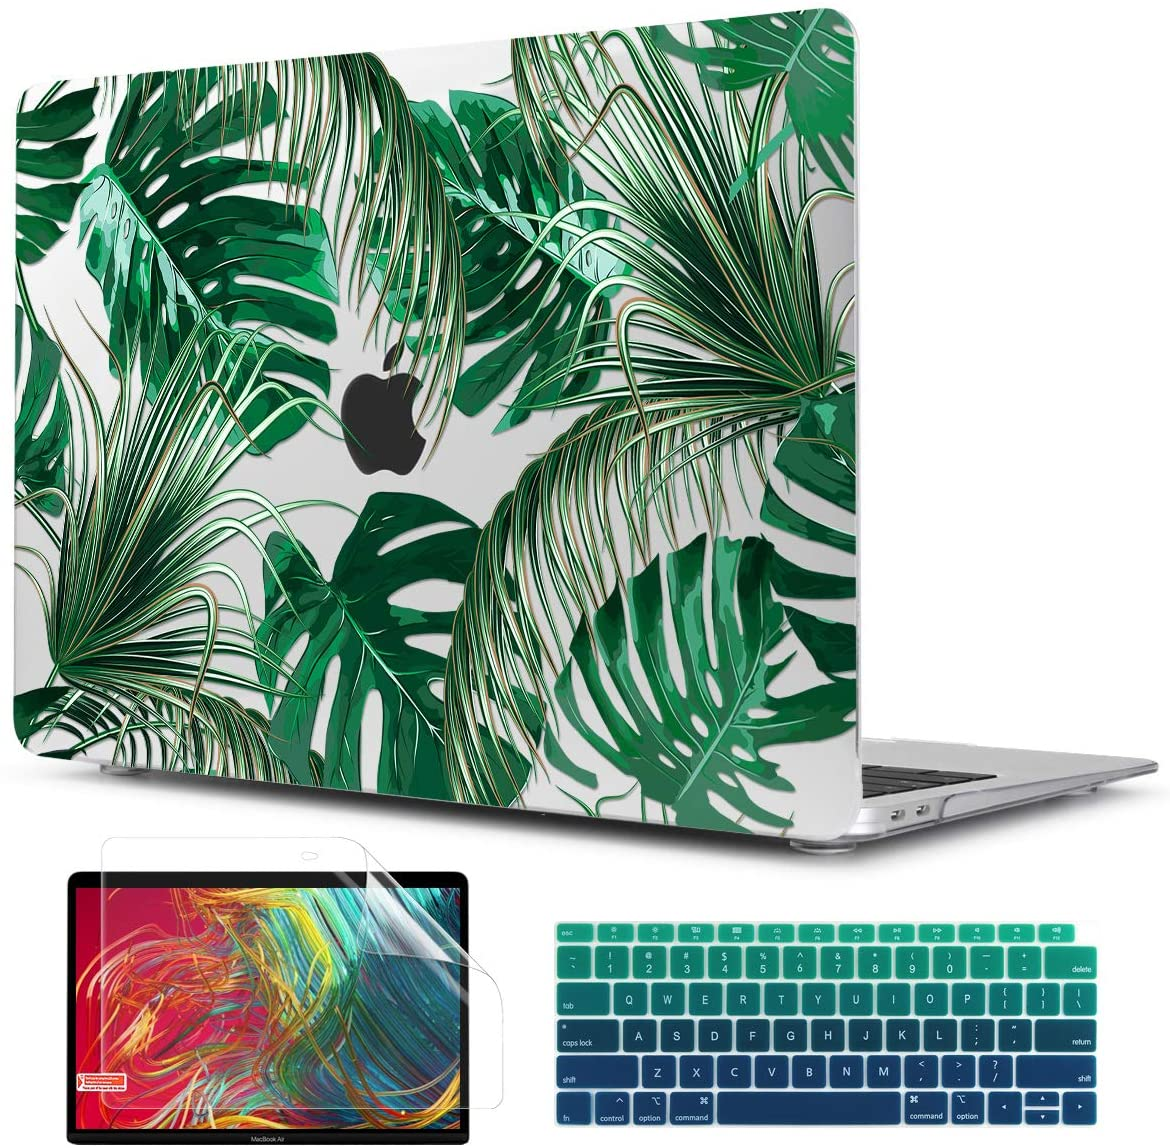 TwoL Tropical Palm Leaves Hard Shell Case Keyboard Cover Screen Protector for 2018 2019 2020 MacBook Air 13 inch Retina Model A1932 A2179